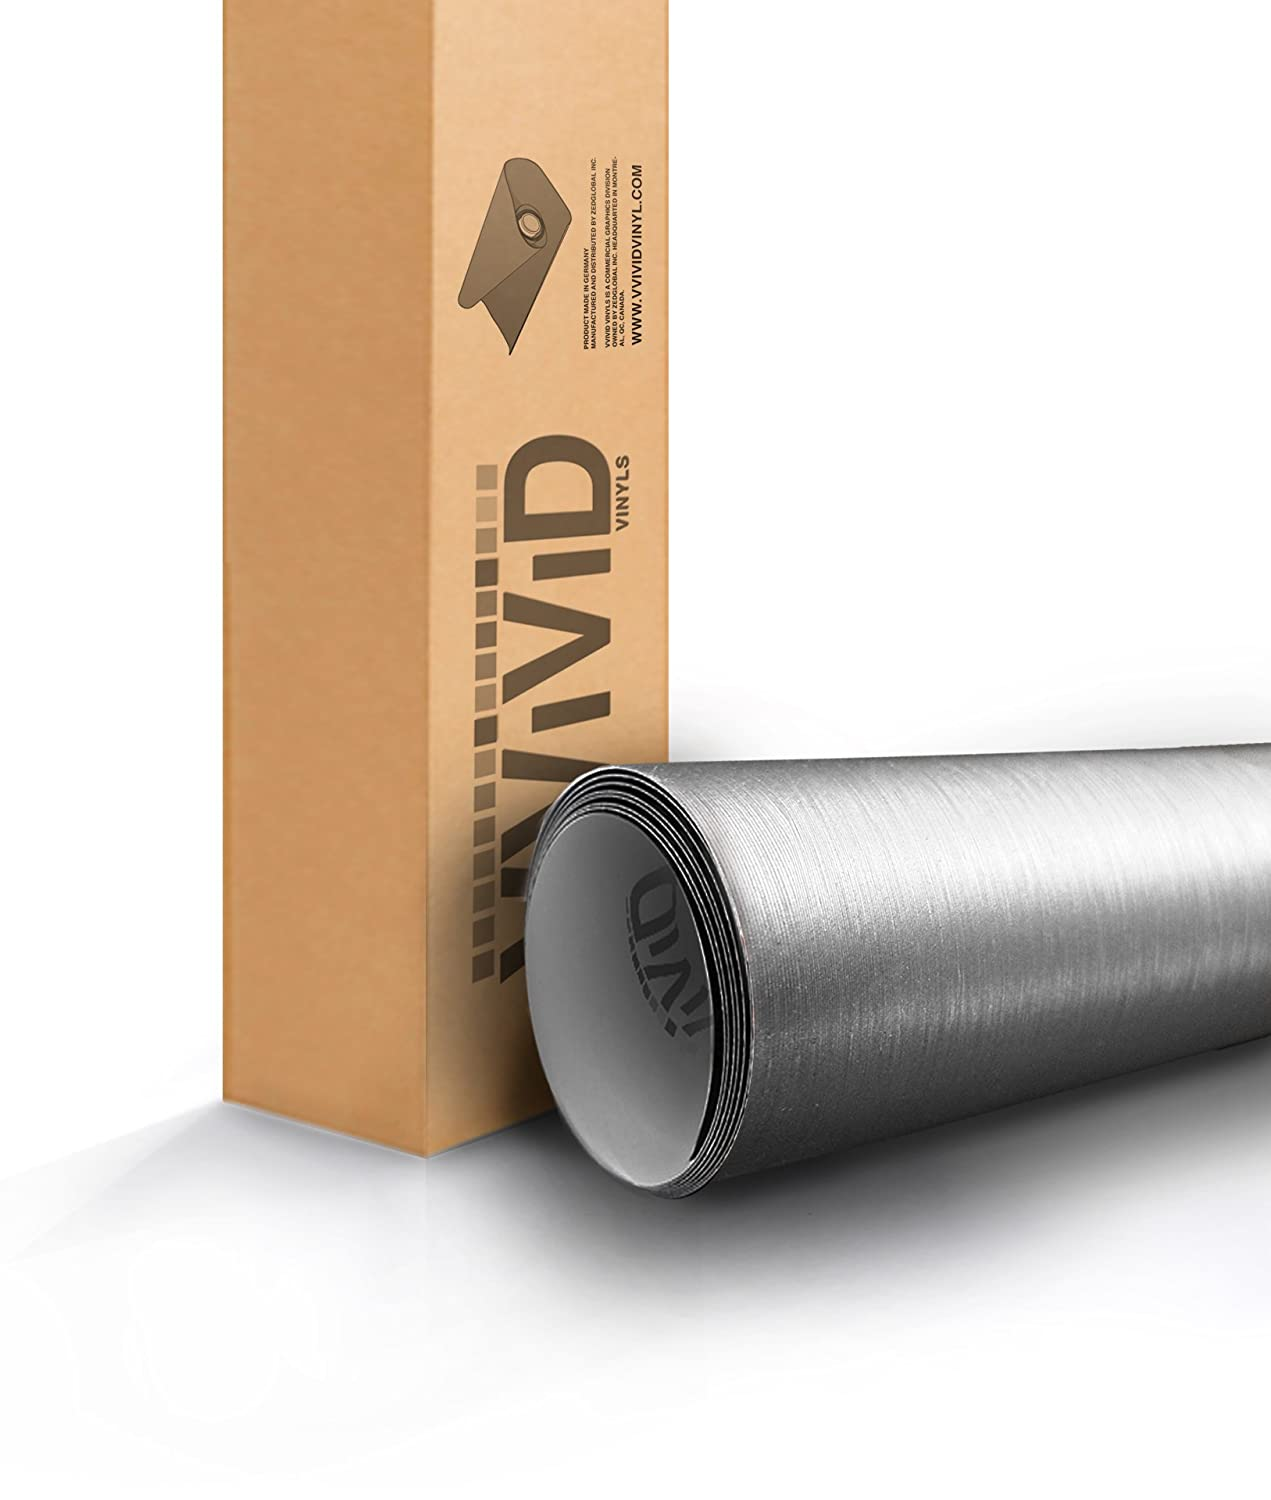 Silver Aluminum Brushed Metal Vinyl Wrap Roll With VViViD XPO Air Release Technology - 1ft x 5ft